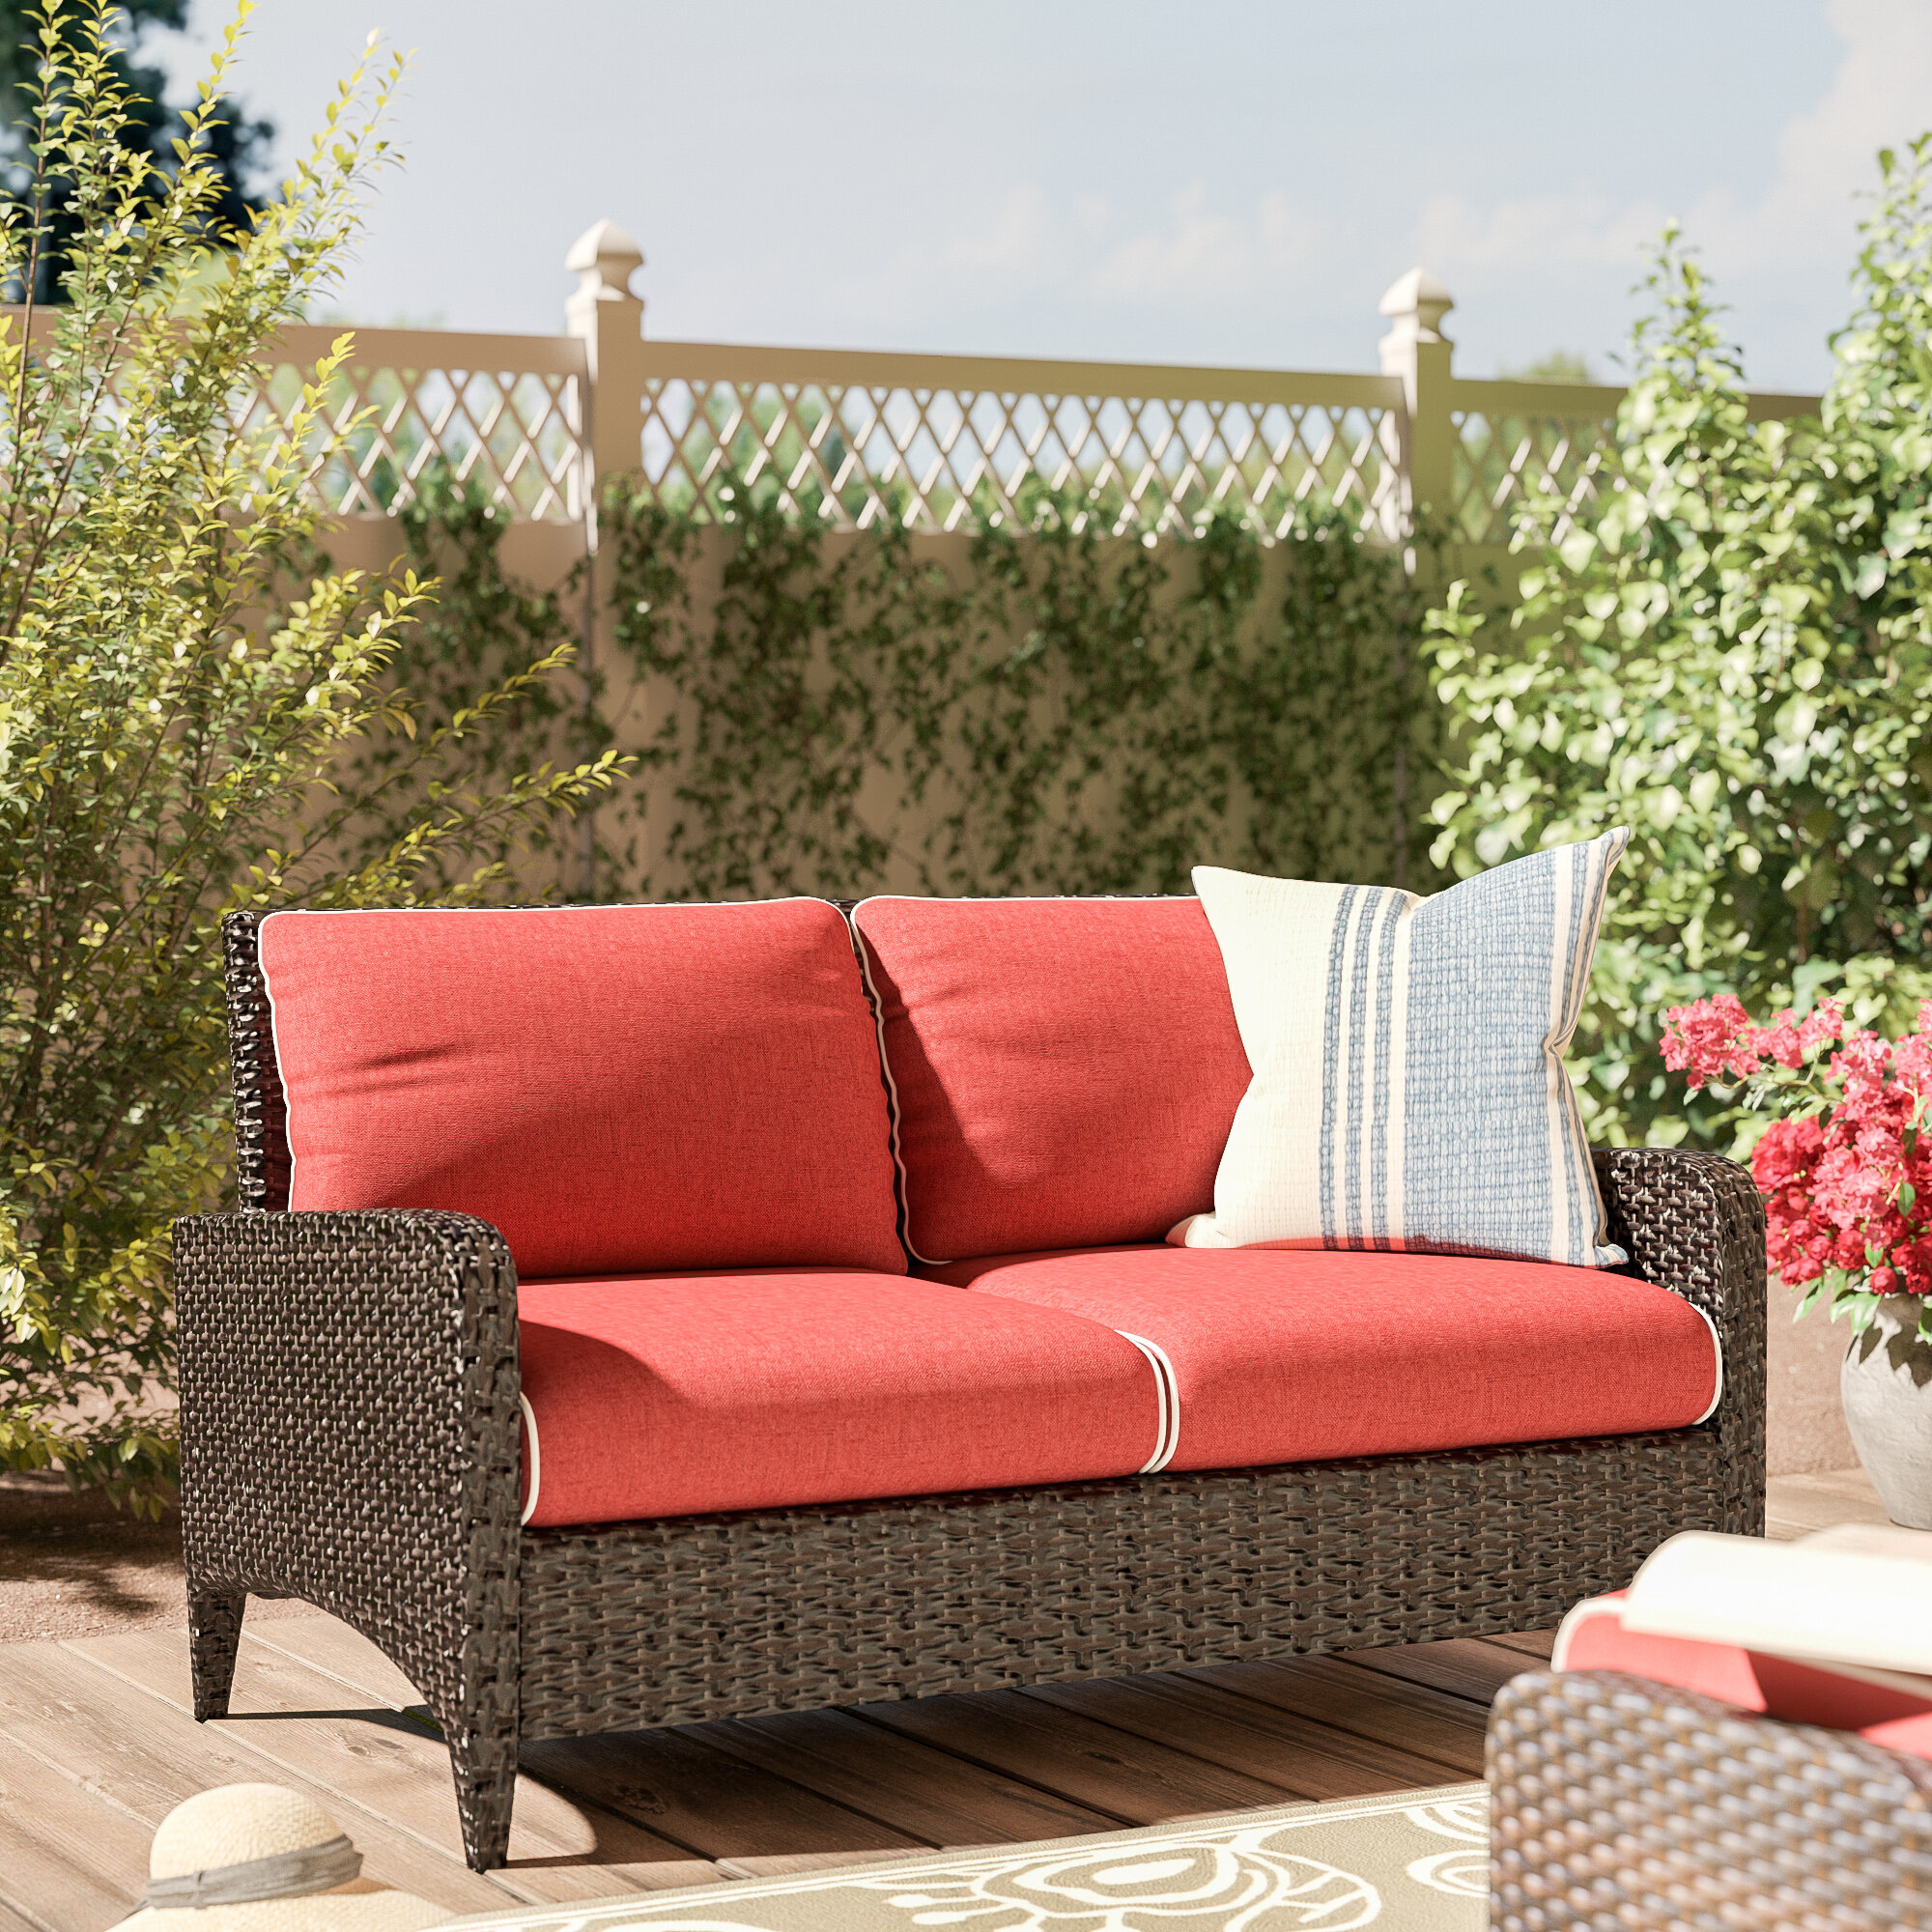 Mosca Patio Loveseats With Kuddar